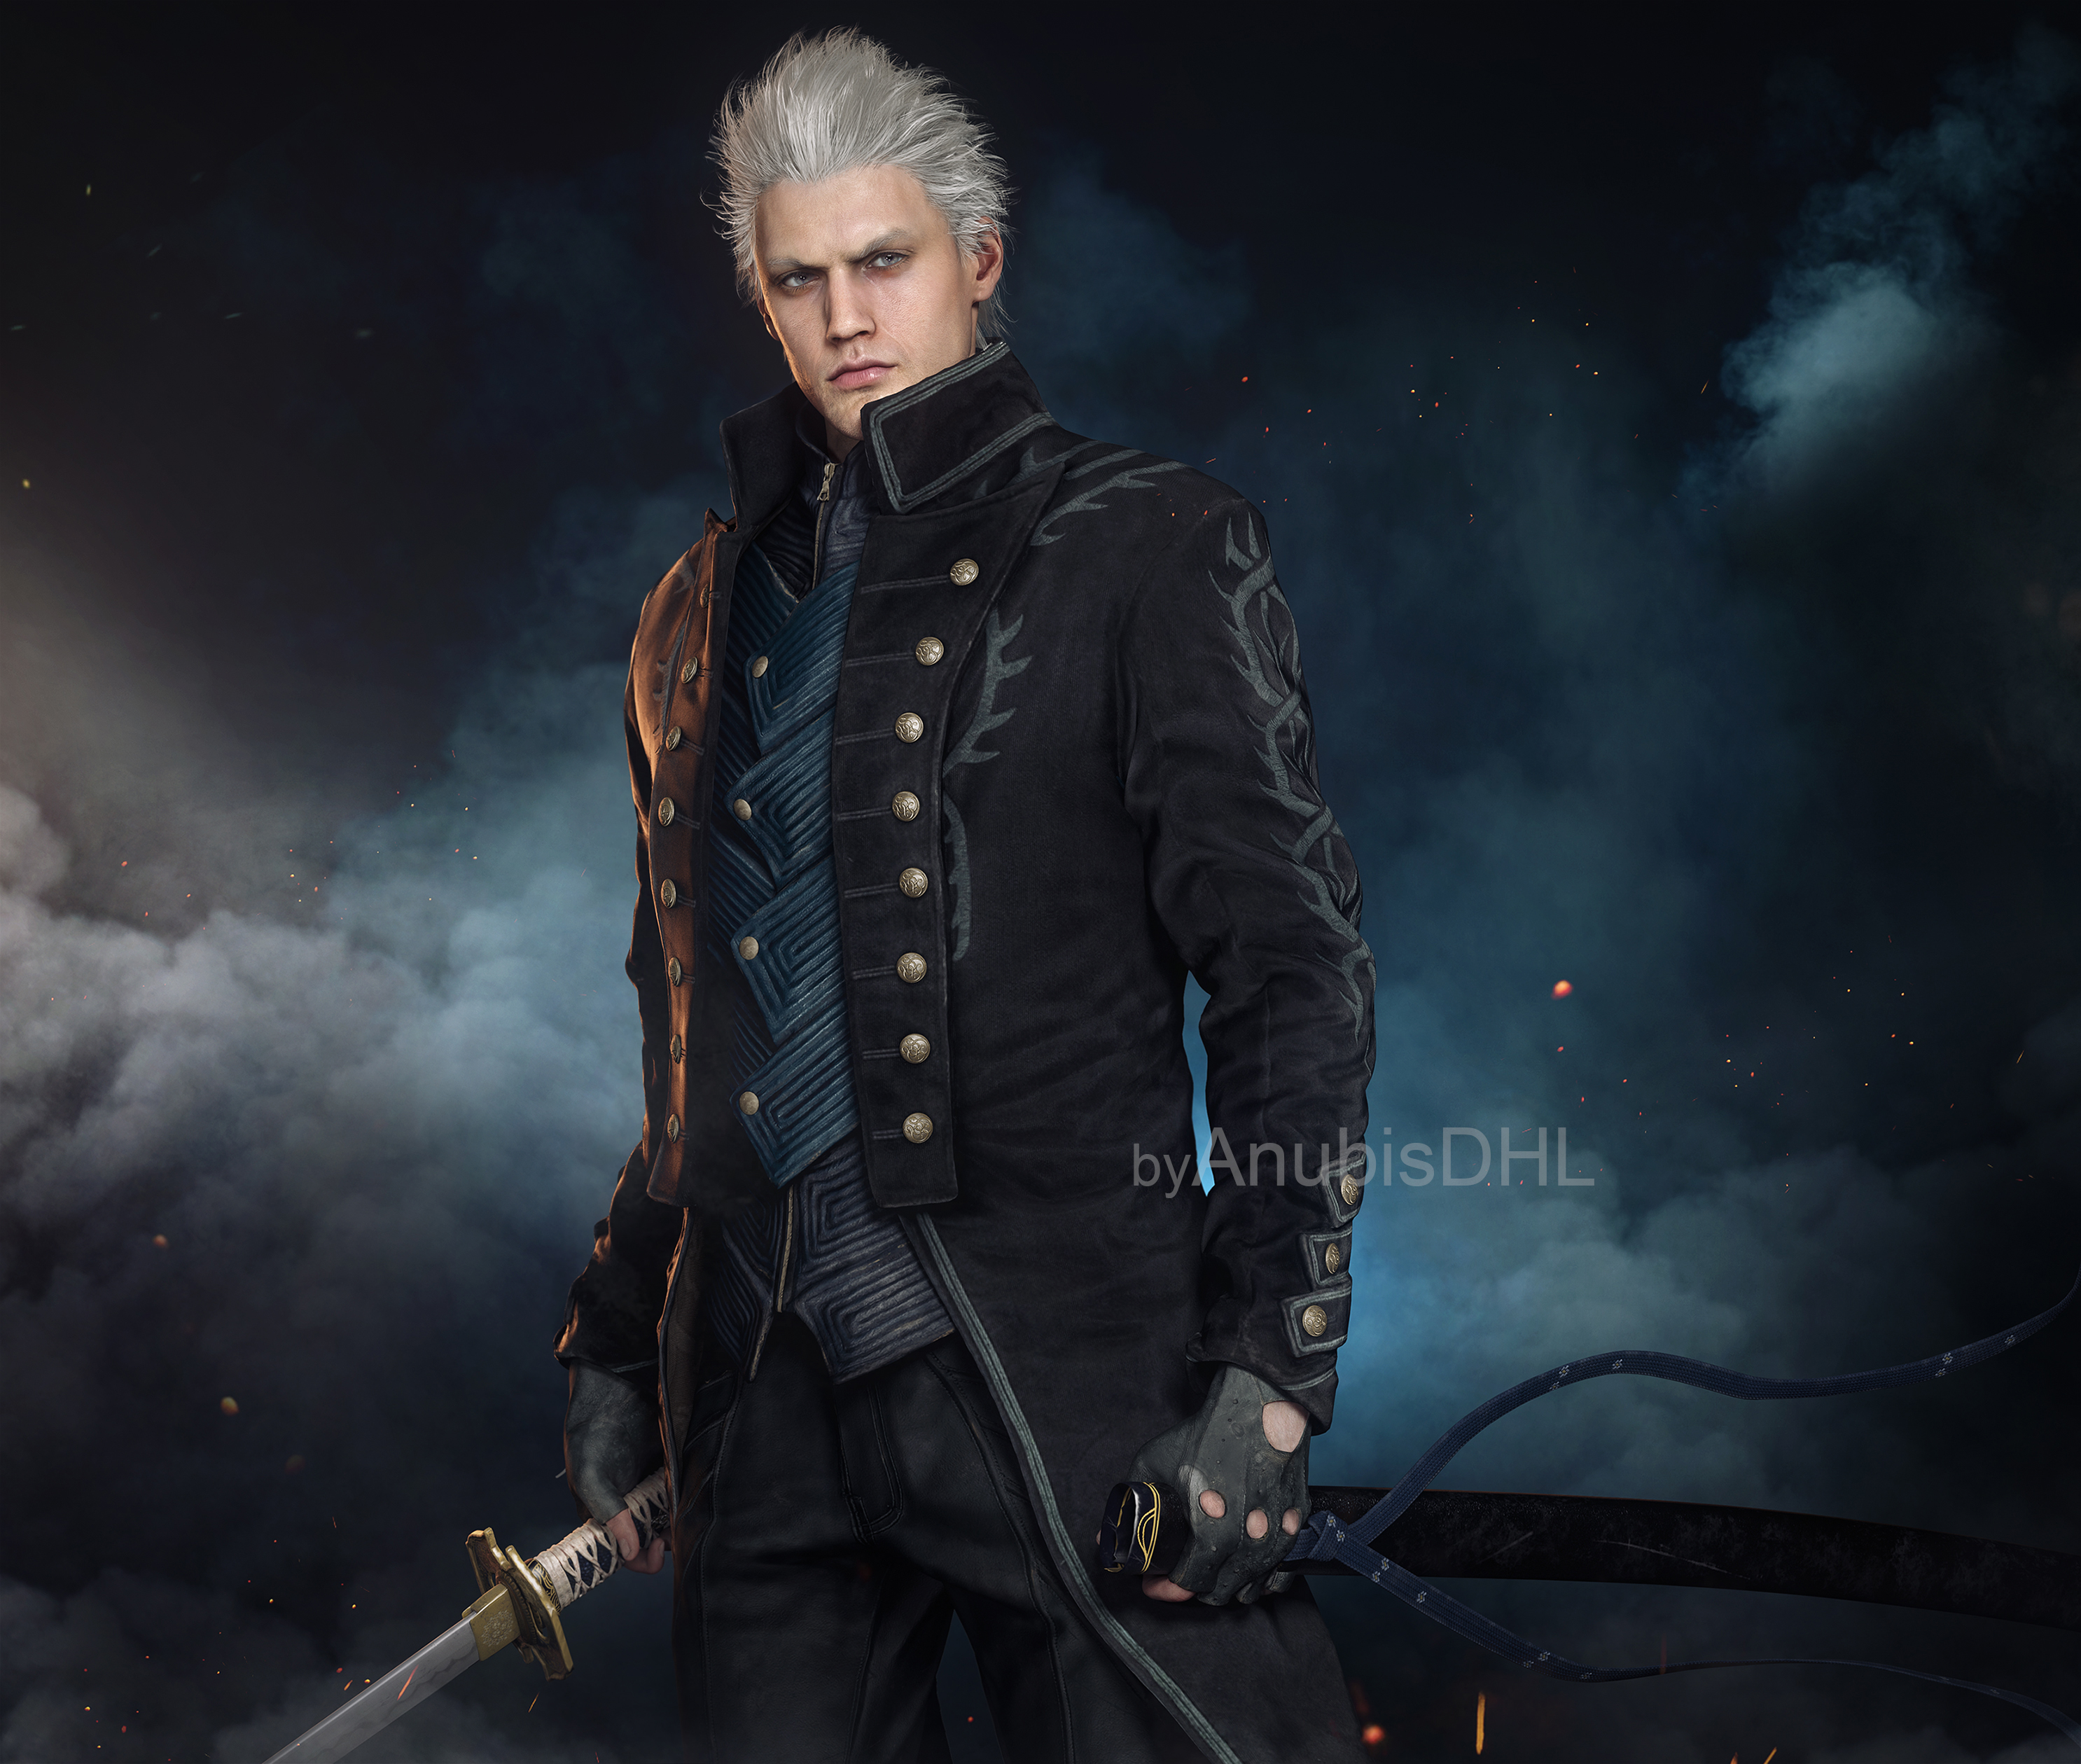 Devil May Cry 5 Vergil By Anubisdhl On Deviantart